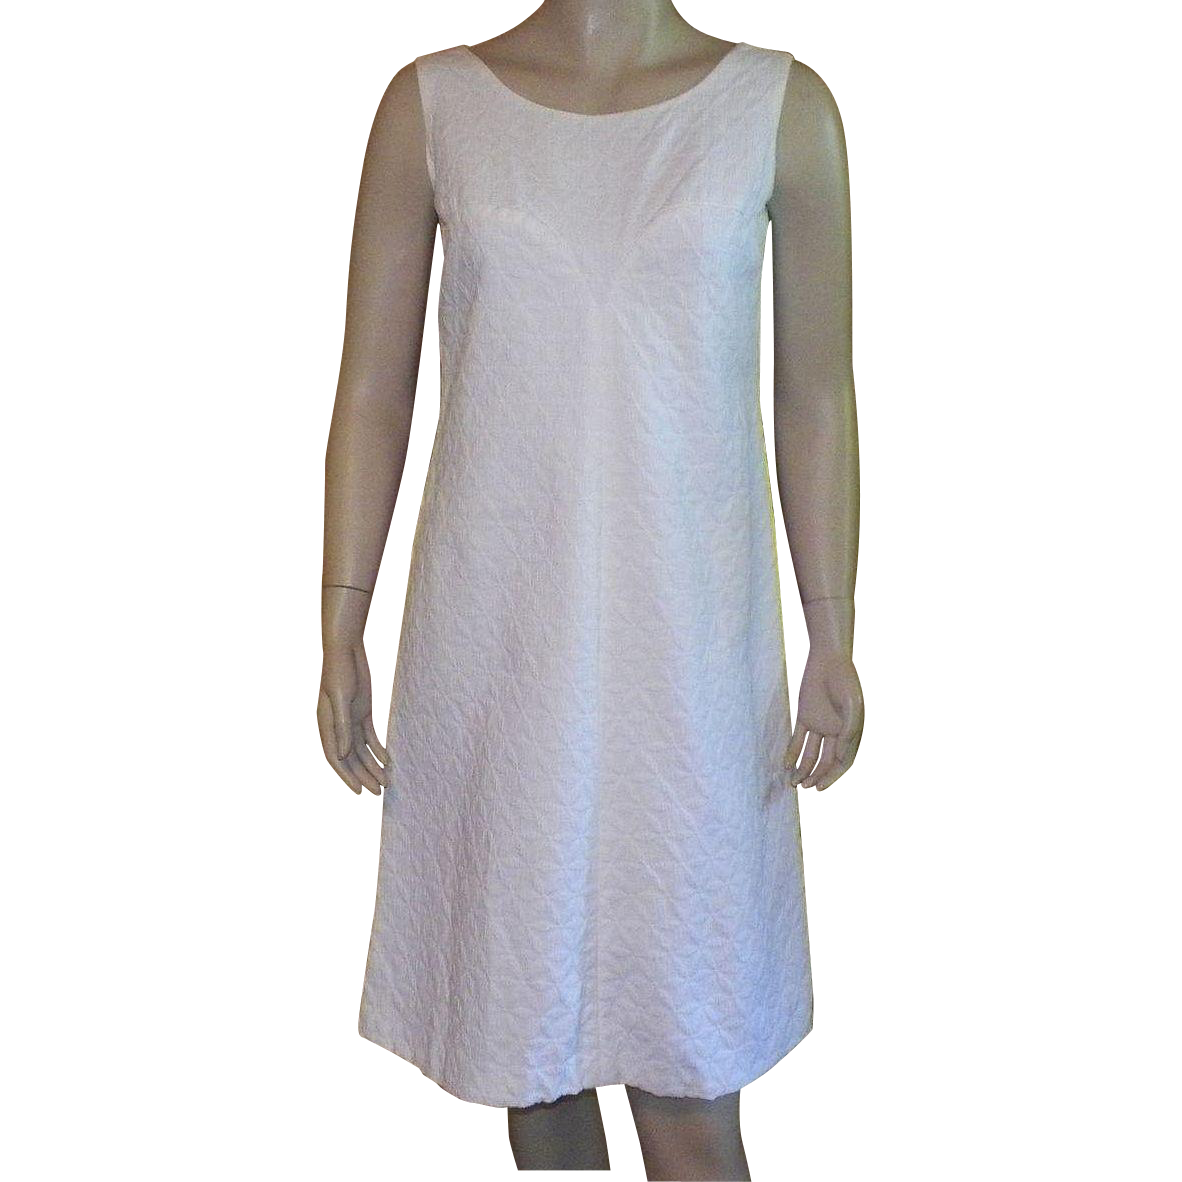 Vintage White Cotton Pique Sleeveless Summer Dress